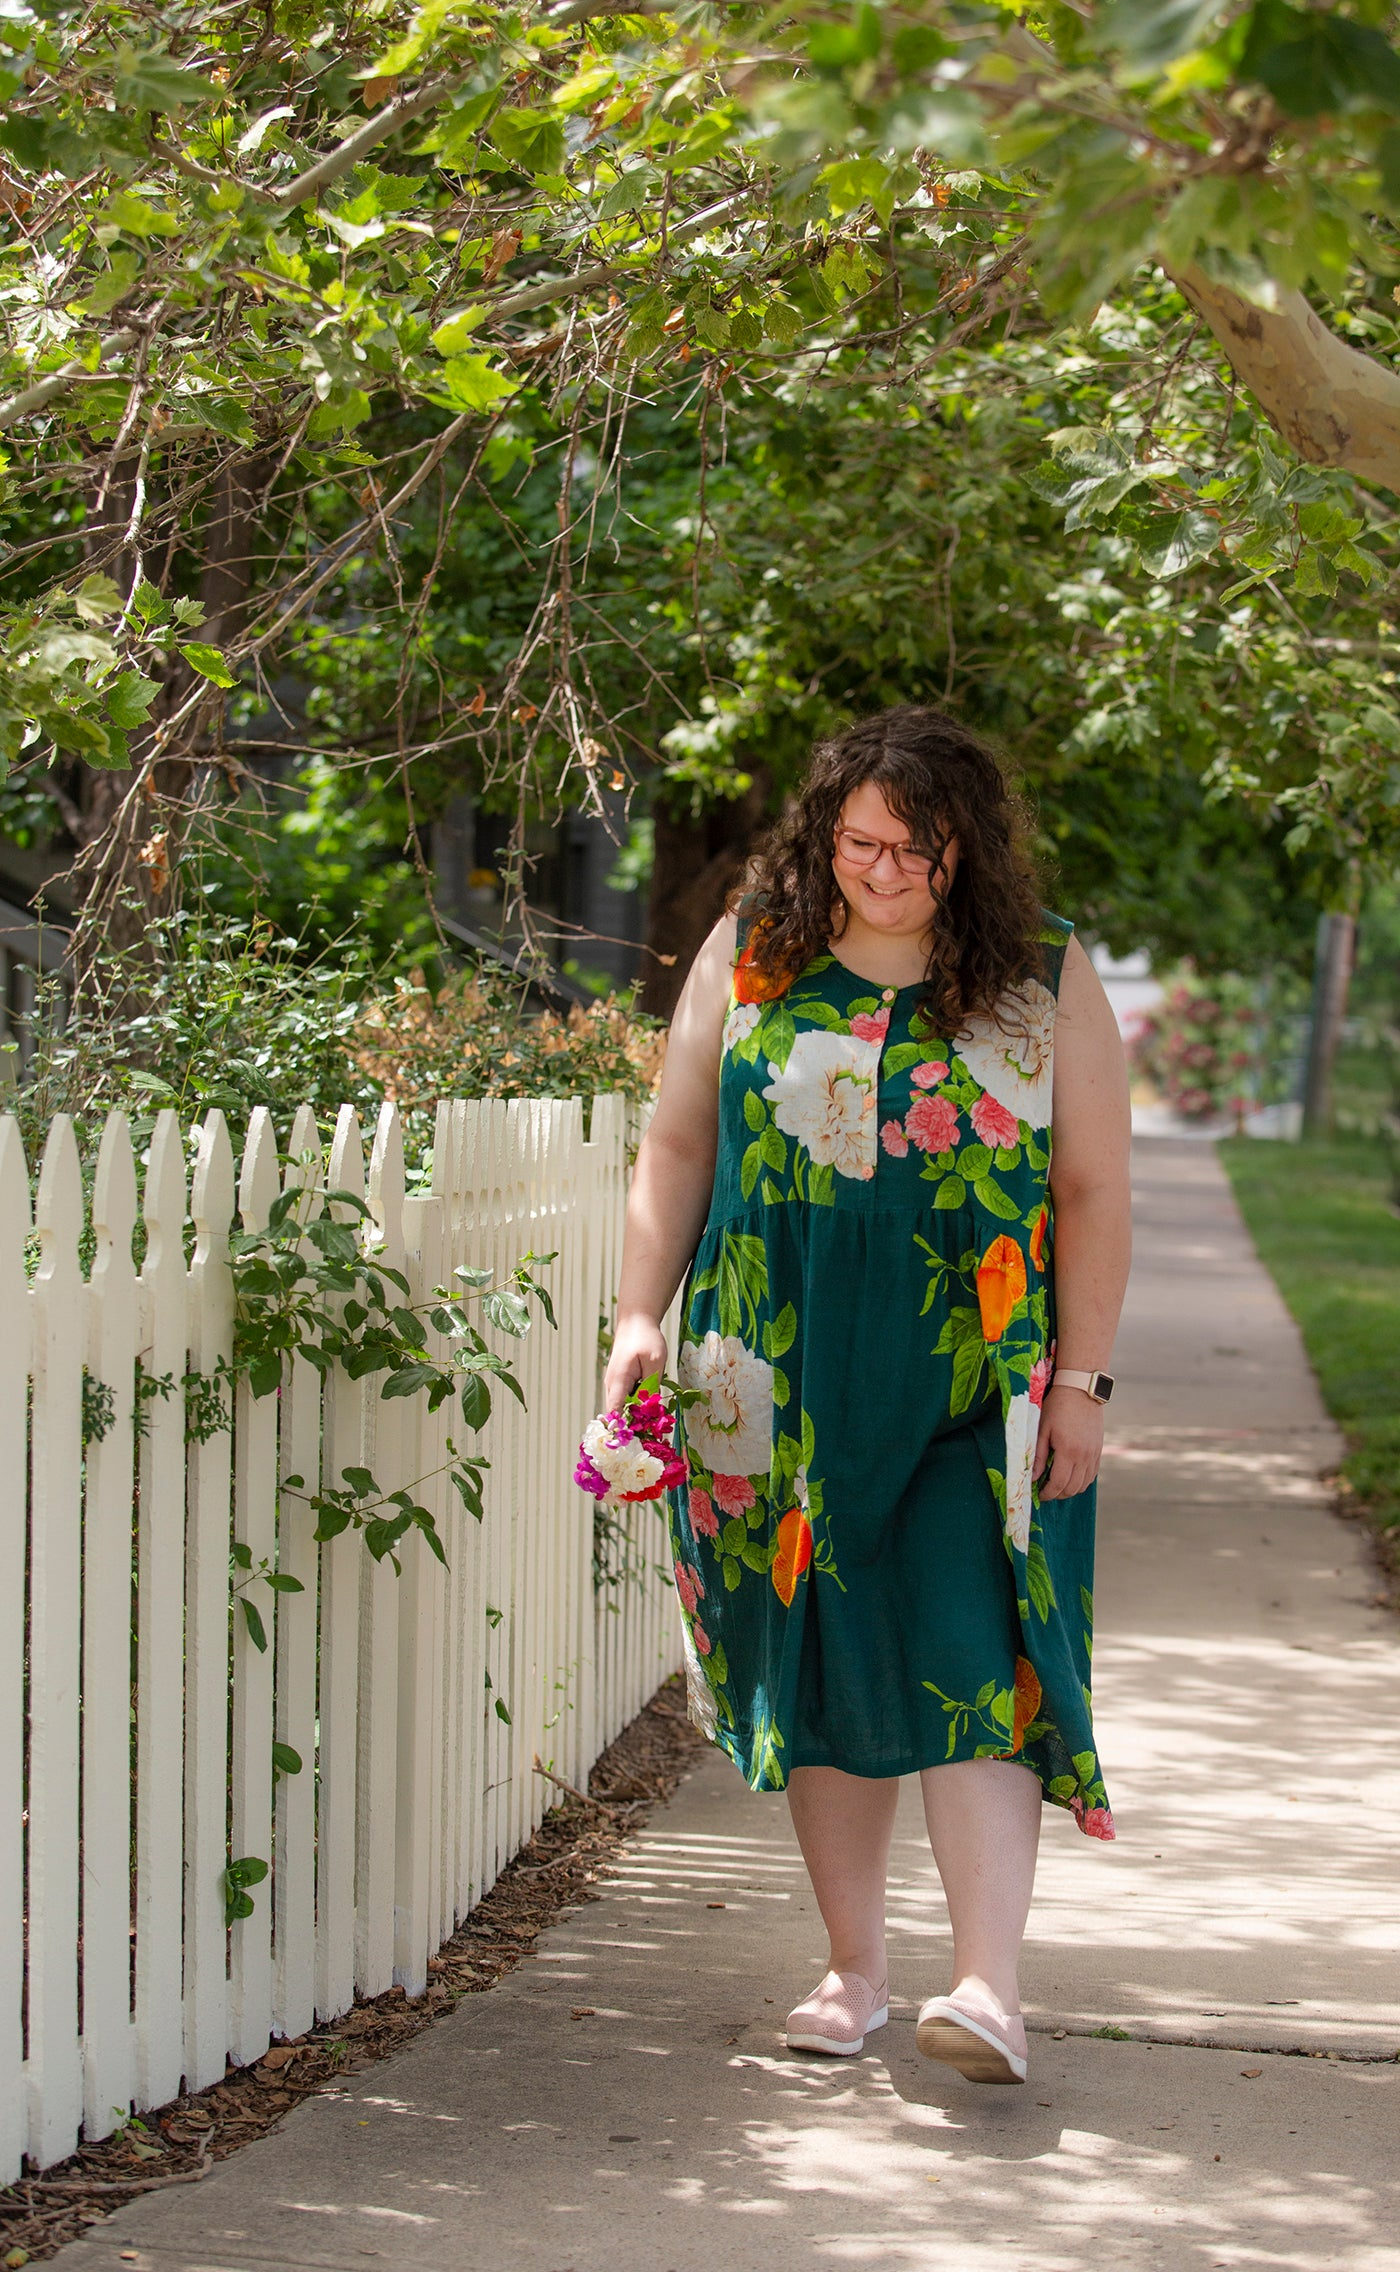 This is an image of a woman wearing a flower covered dress standing next to flowers and a white picket fence.